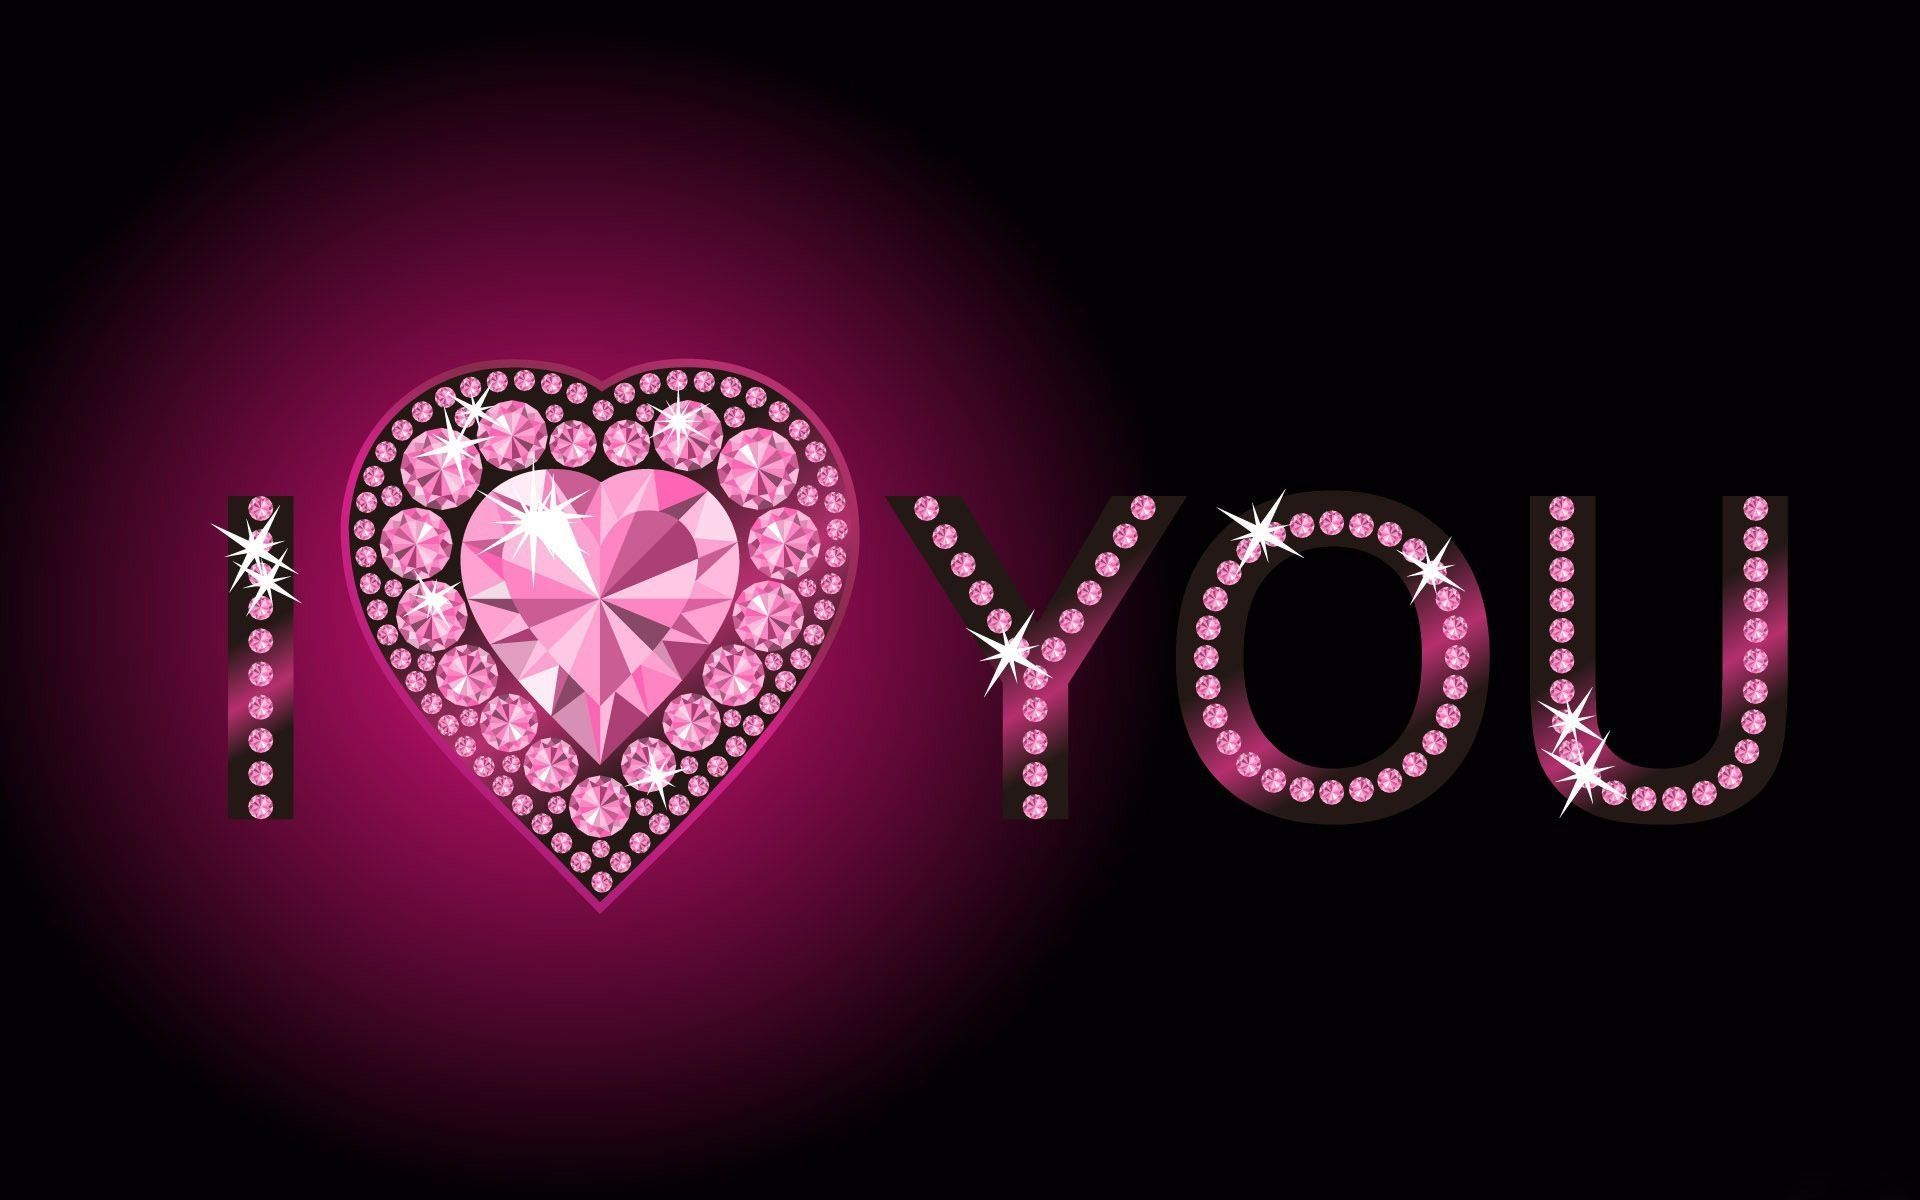 images of love you download download - i love u image wallpapers